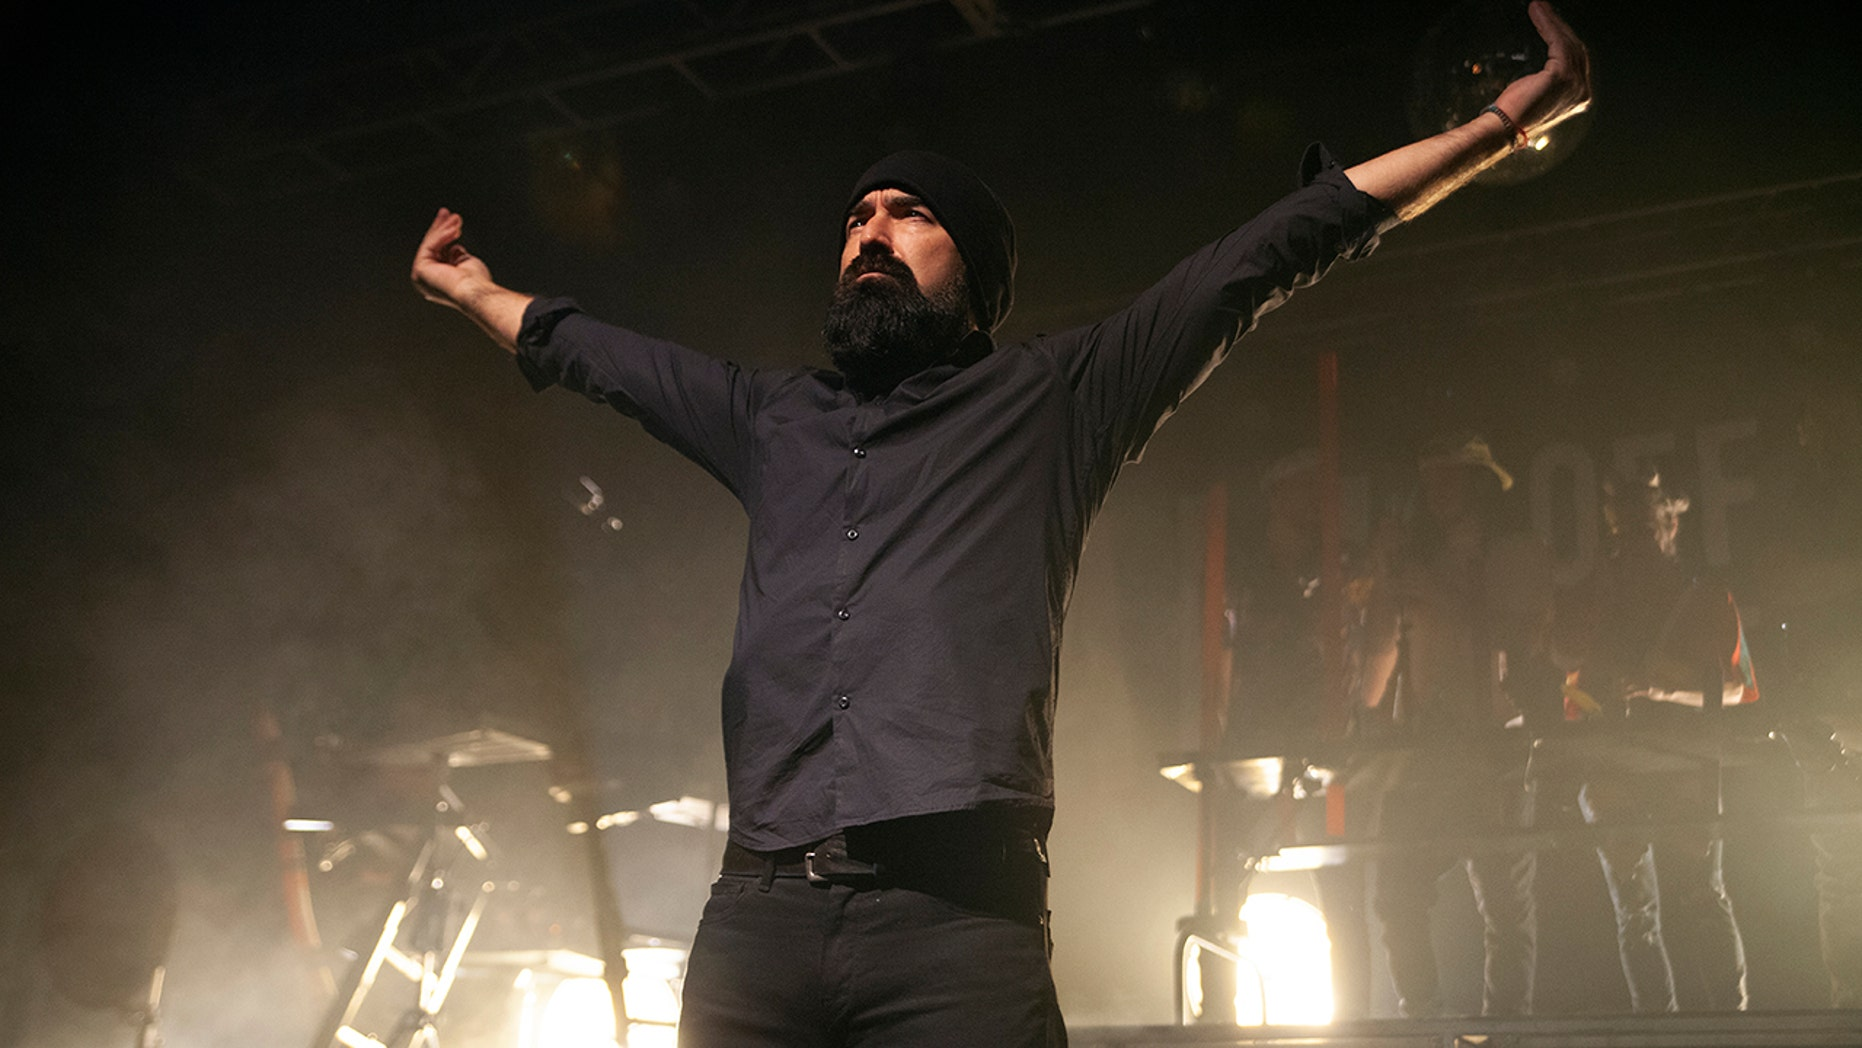 """CHARLOTTE, NORTH CAROLINA - NOVEMBER 06: Mike """"Beard Guy"""" Taylor of Walk Off the Earth performs at The Fillmore Charlotte on November 06, 2018 in Charlotte, North Carolina. Taylor passed away from natural causes on Dec. 30, 2018."""